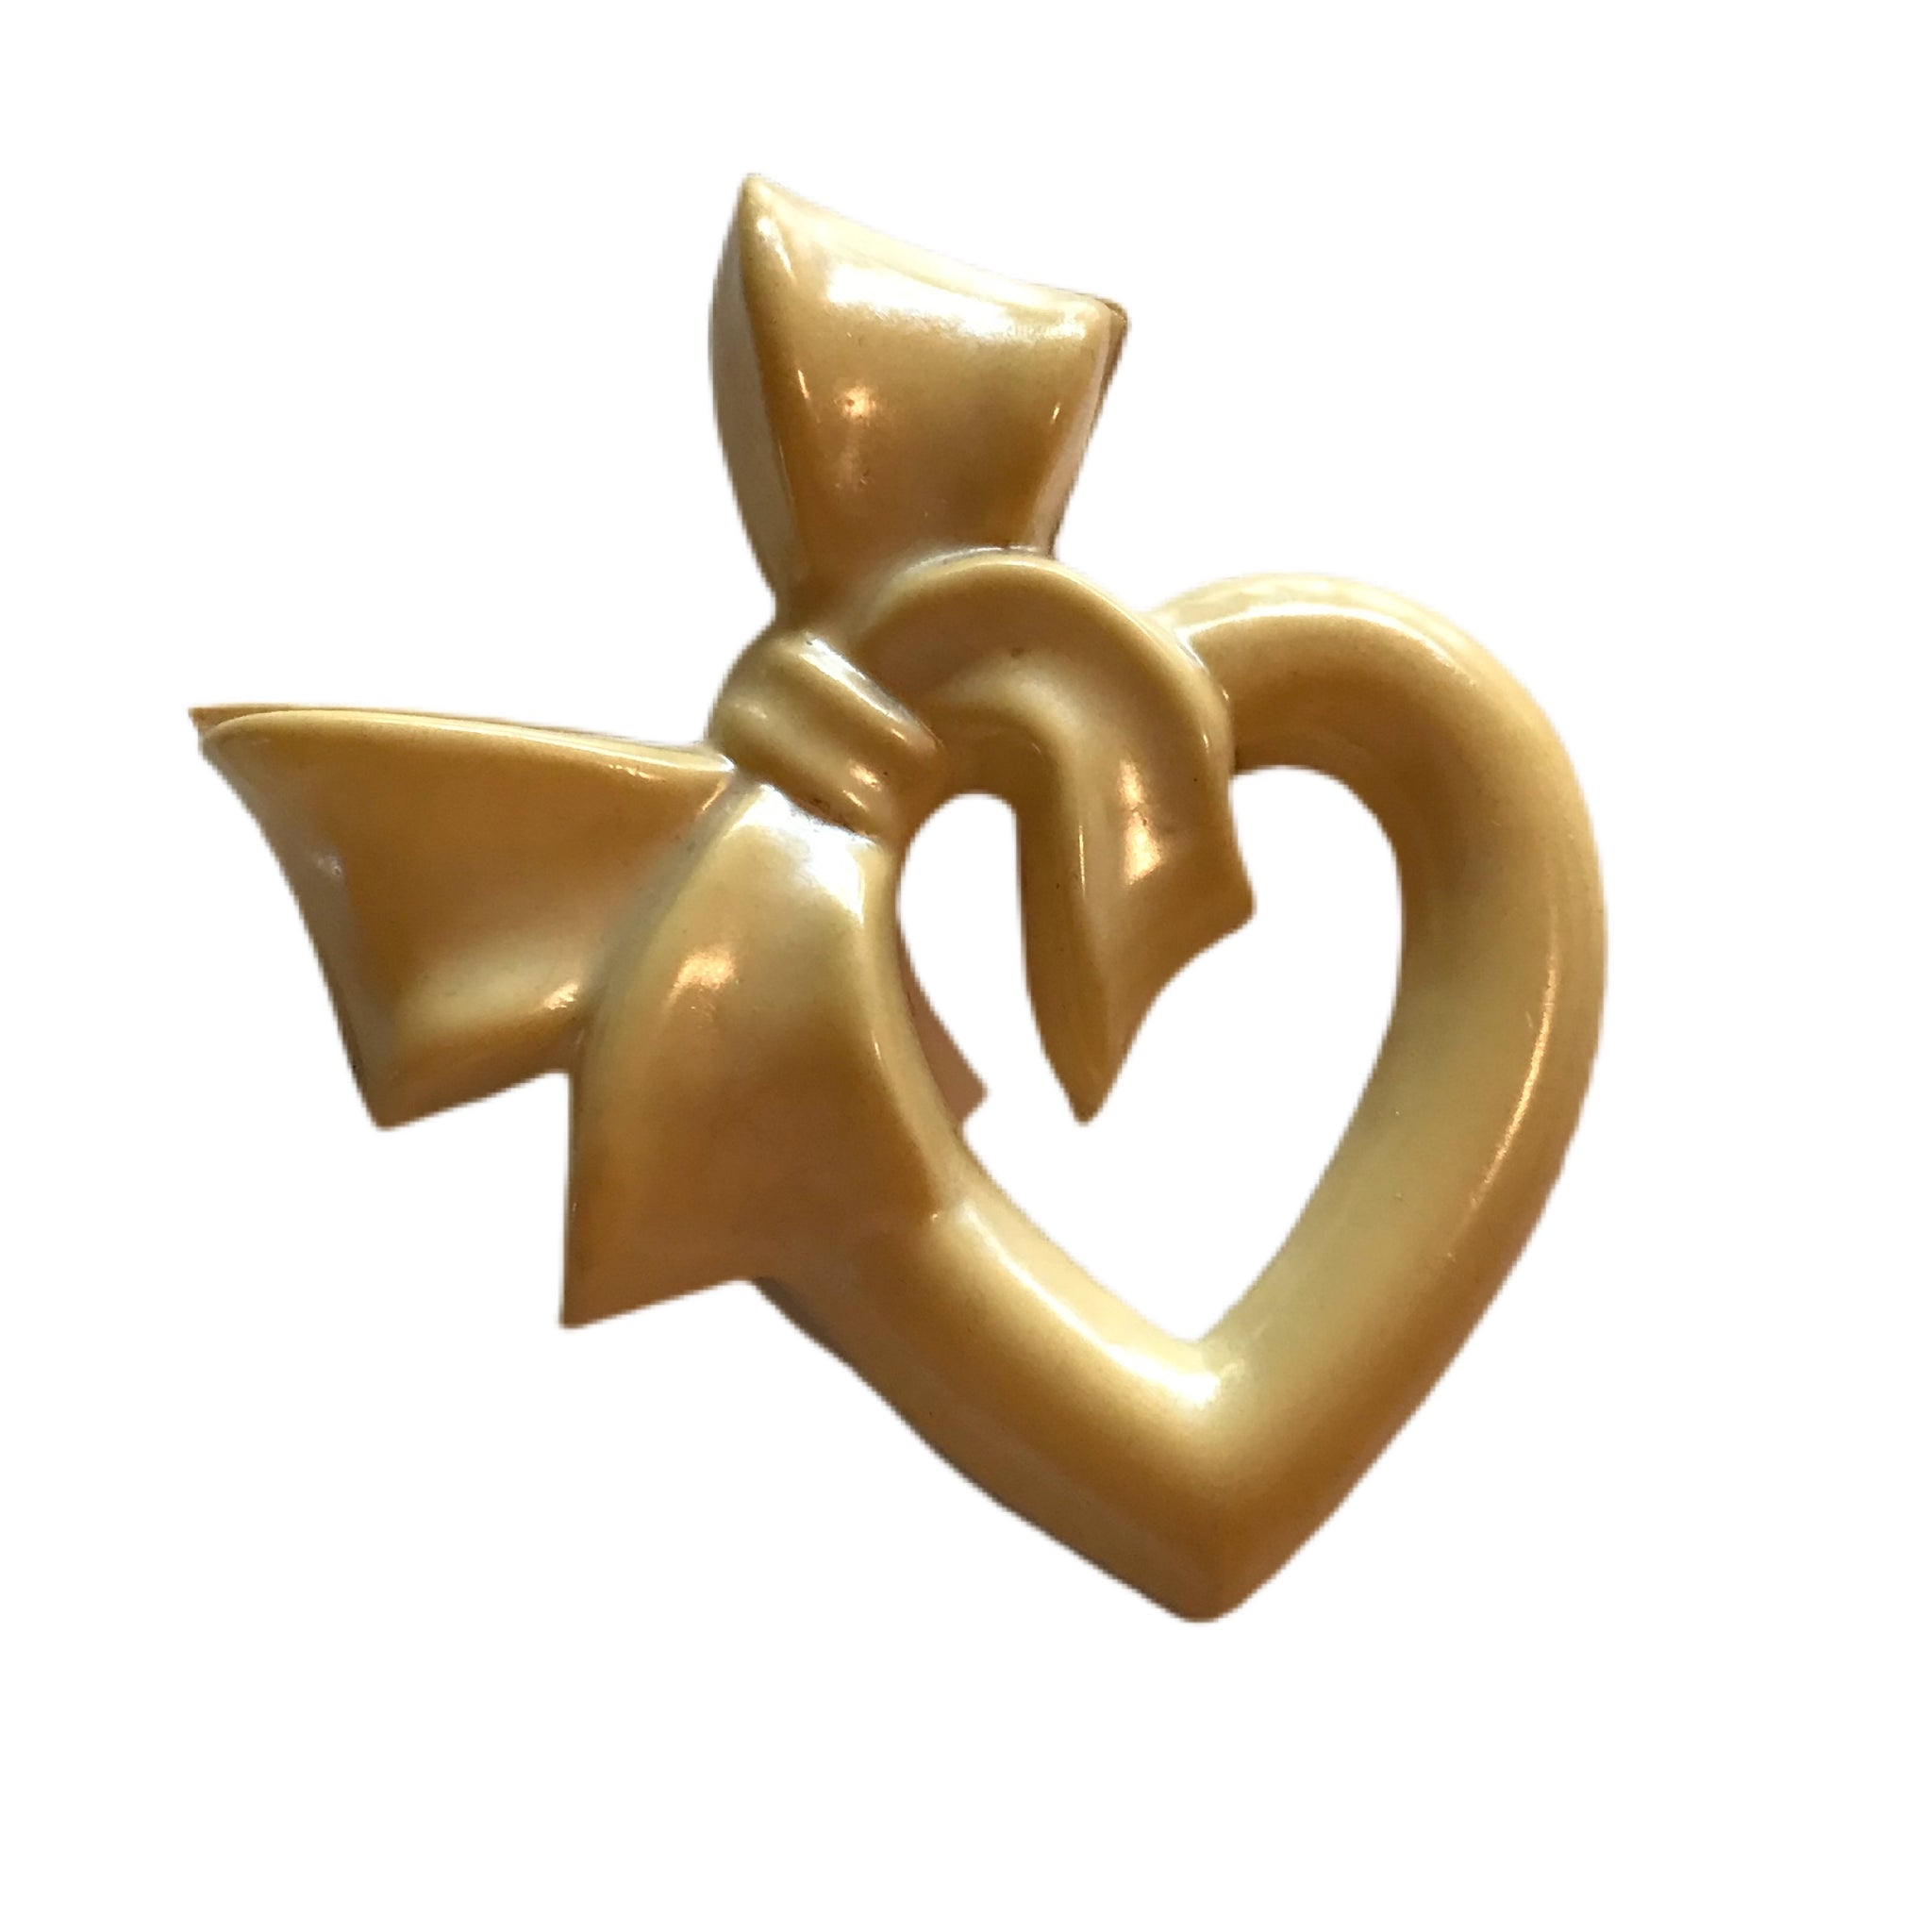 Ivory Celluloid Cartoon Heart and Bow Brooch circa 1930s